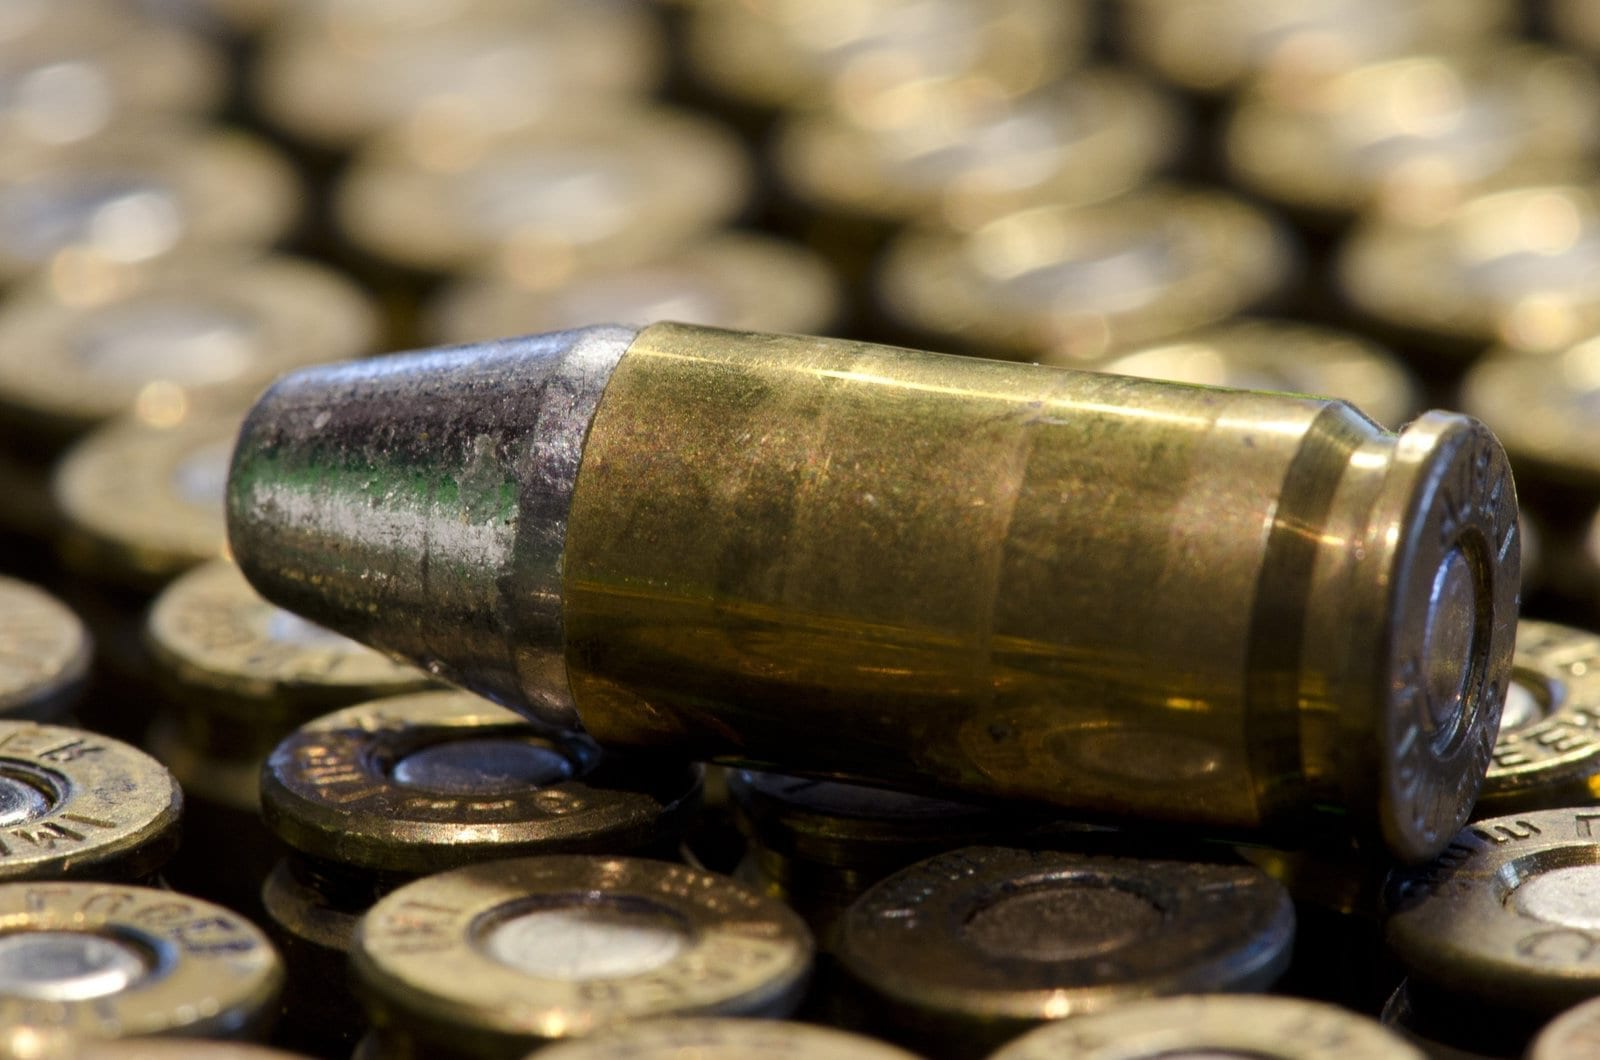 9mm ammunition in bulk for course or training